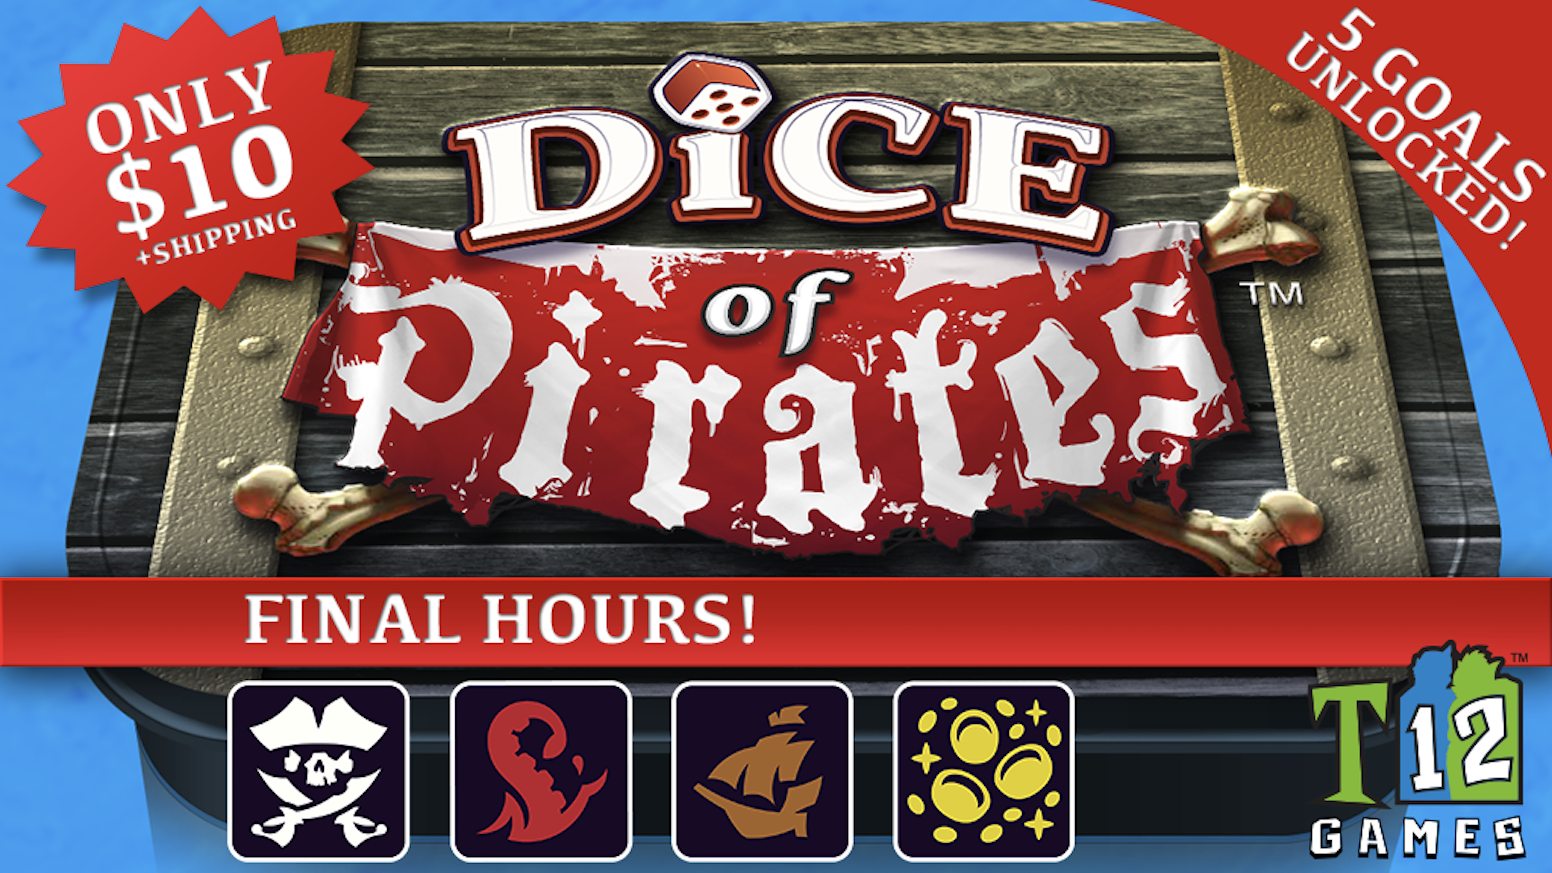 Roll the bones! Fight yer mates! Claim the gold! A fast-paced game of piracy for 2 to 6 players.  From the makers of Dice of Crowns!